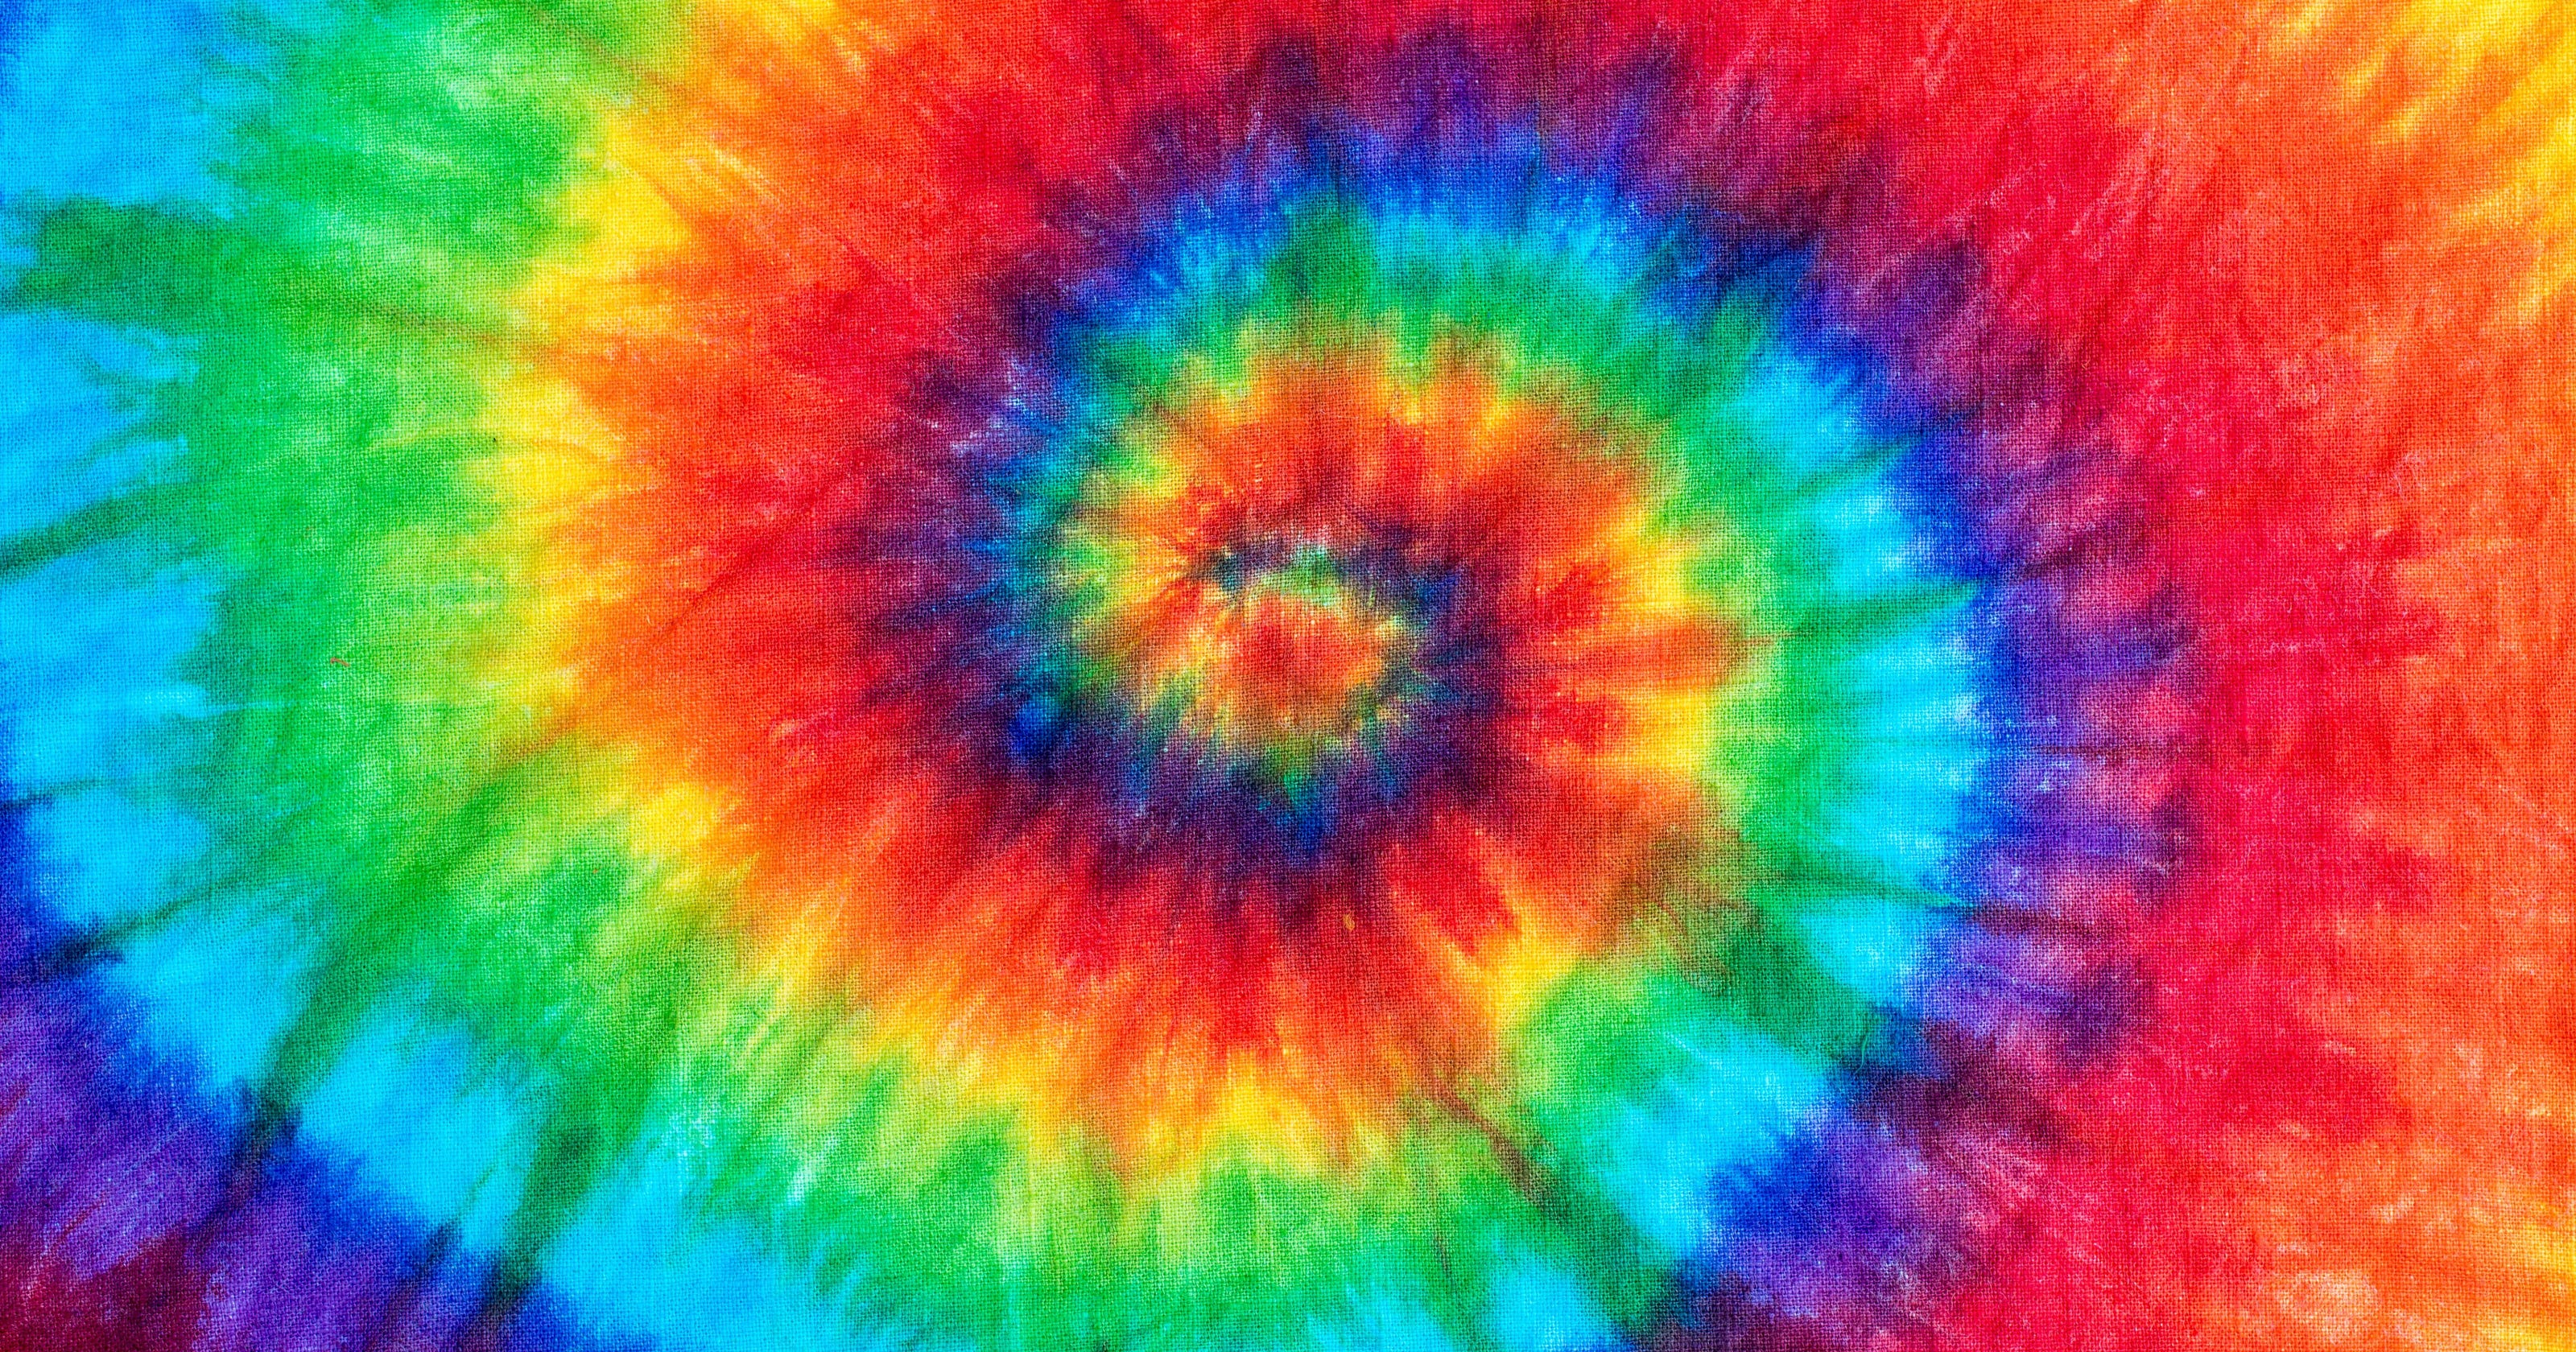 Colorful circular tie-dye on fabric.